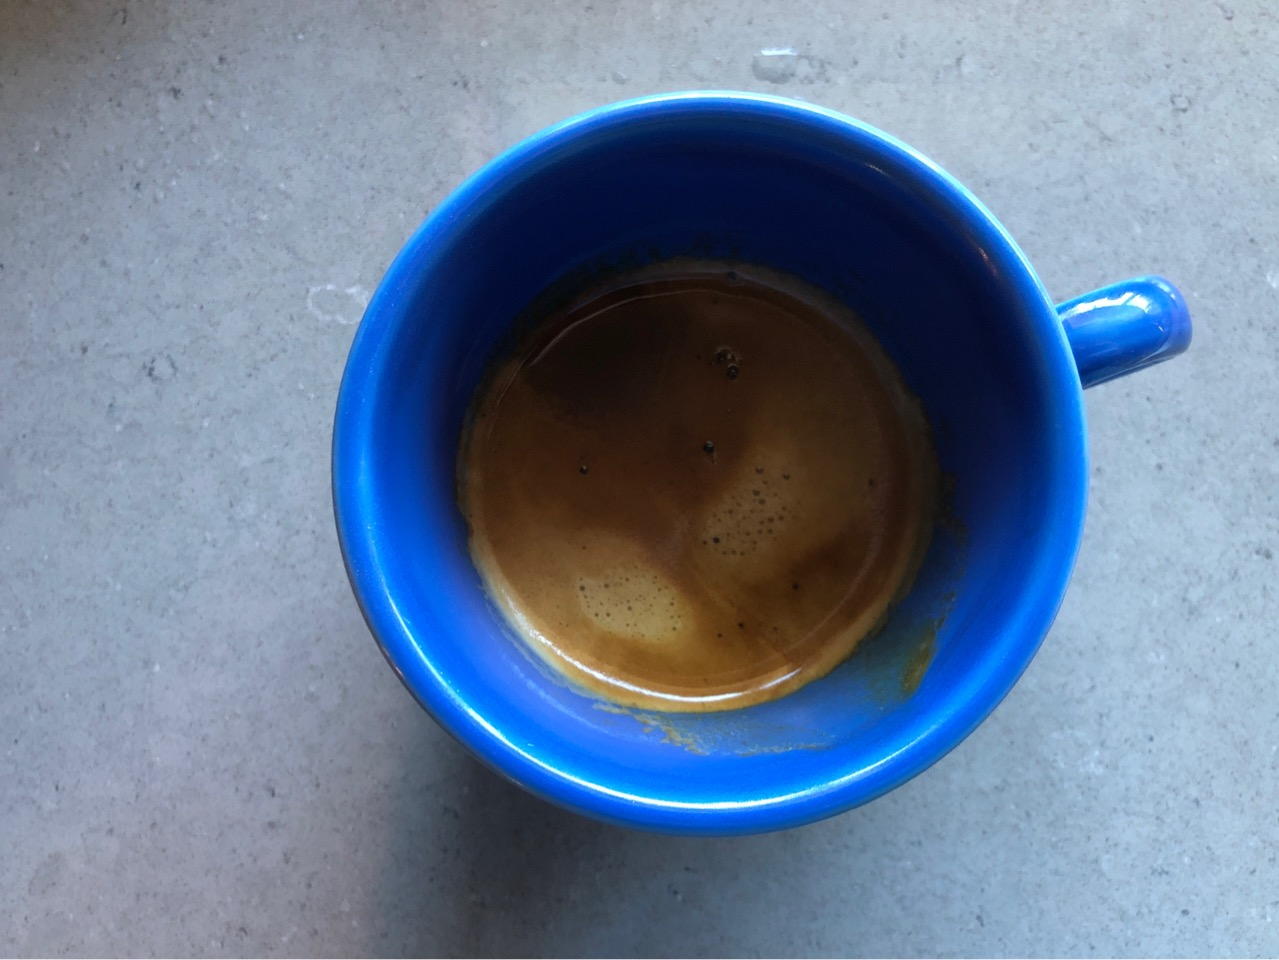 Photo of a blue mug of espresso